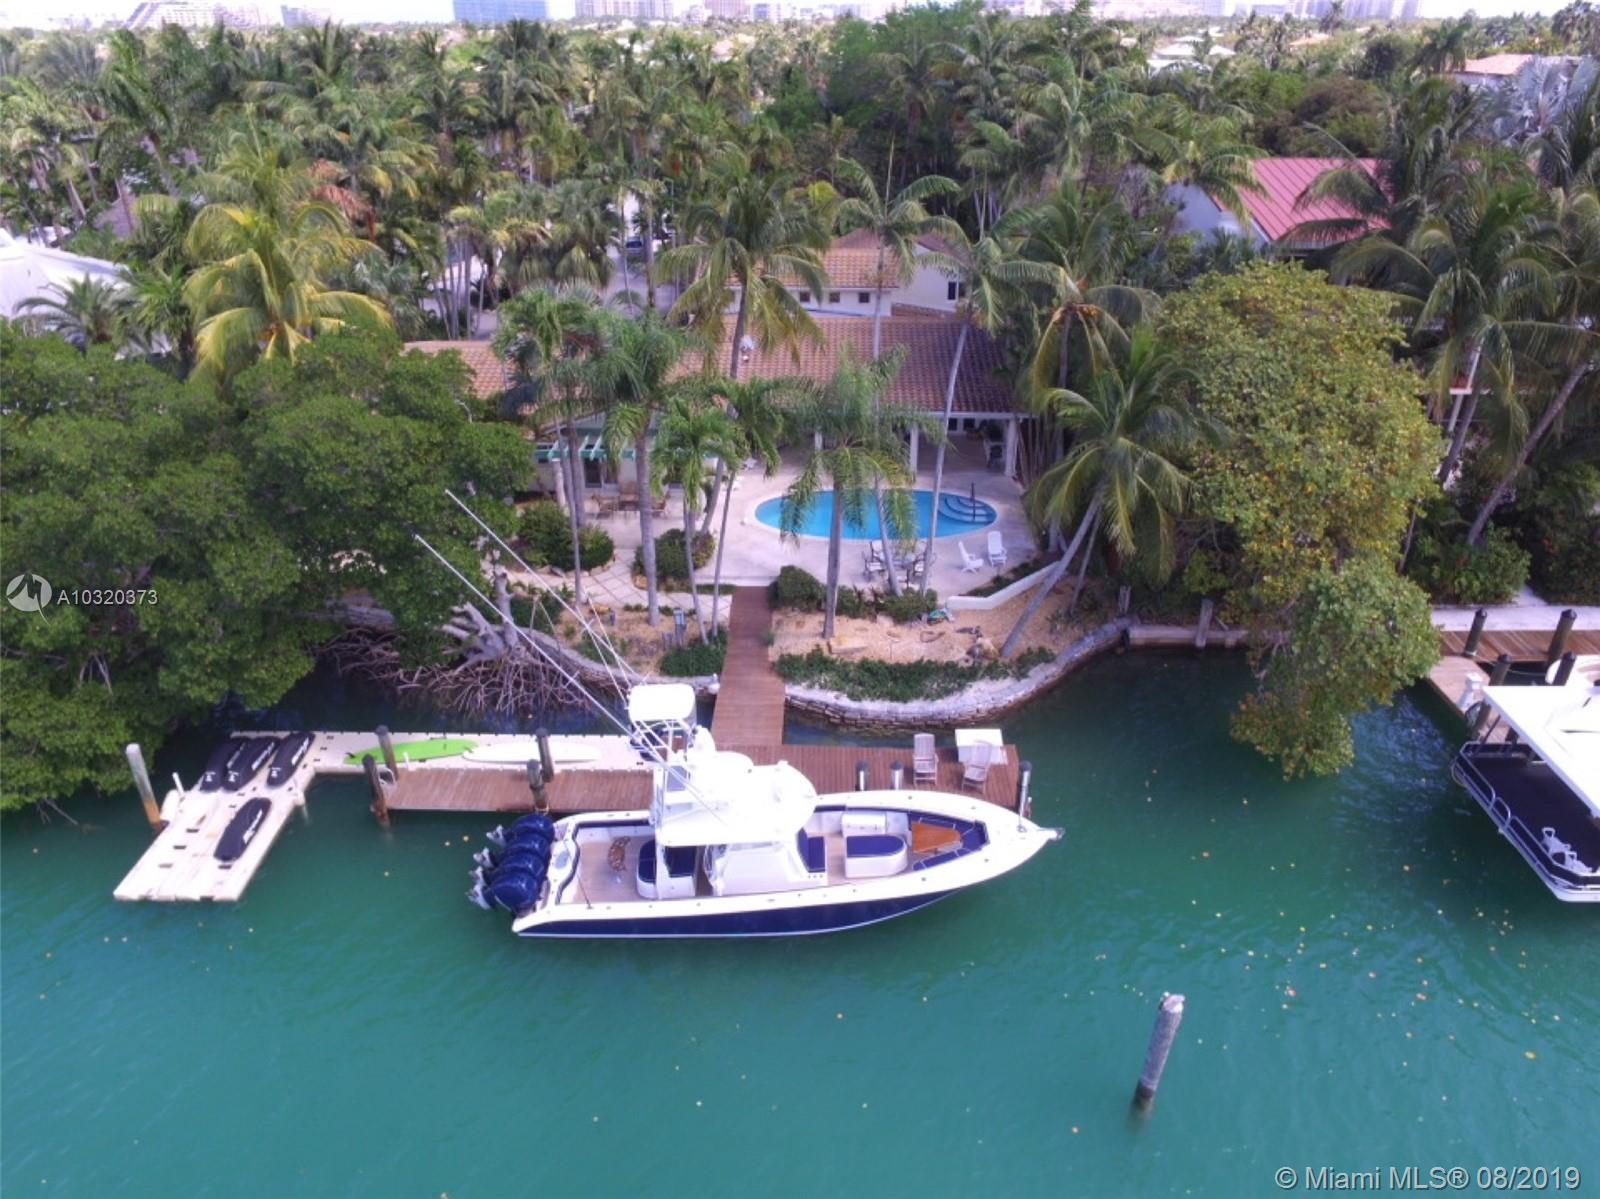 Charming, Secluded Waterfront Home On Private Cul De Sac. Wide Berth Canal Minutes From Biscayne Bay With No Fixed Bridges. 5 Bdrms 4 Bth 1 Half Bth Home With Spacious Outdoor Living Including Pool Great For Entertaining. Mature Landscaping Throughout The Oversized Lot And Equipped With State Of The Art Lighting System. Family Friendly Street With Little To No Traffic On A Daily Basis. With Some Remodeling This Spectacular Residence Can Be Brought To Like New Condition. New Roof In 2015. Extended Dock With Pilings Allows For Large Boats Including Sportfish And Motor Yachts. Floating Dock Attached For Paddleboards, Kayaks, Jet Skis Etc. 24Hrs Notice For Showings.